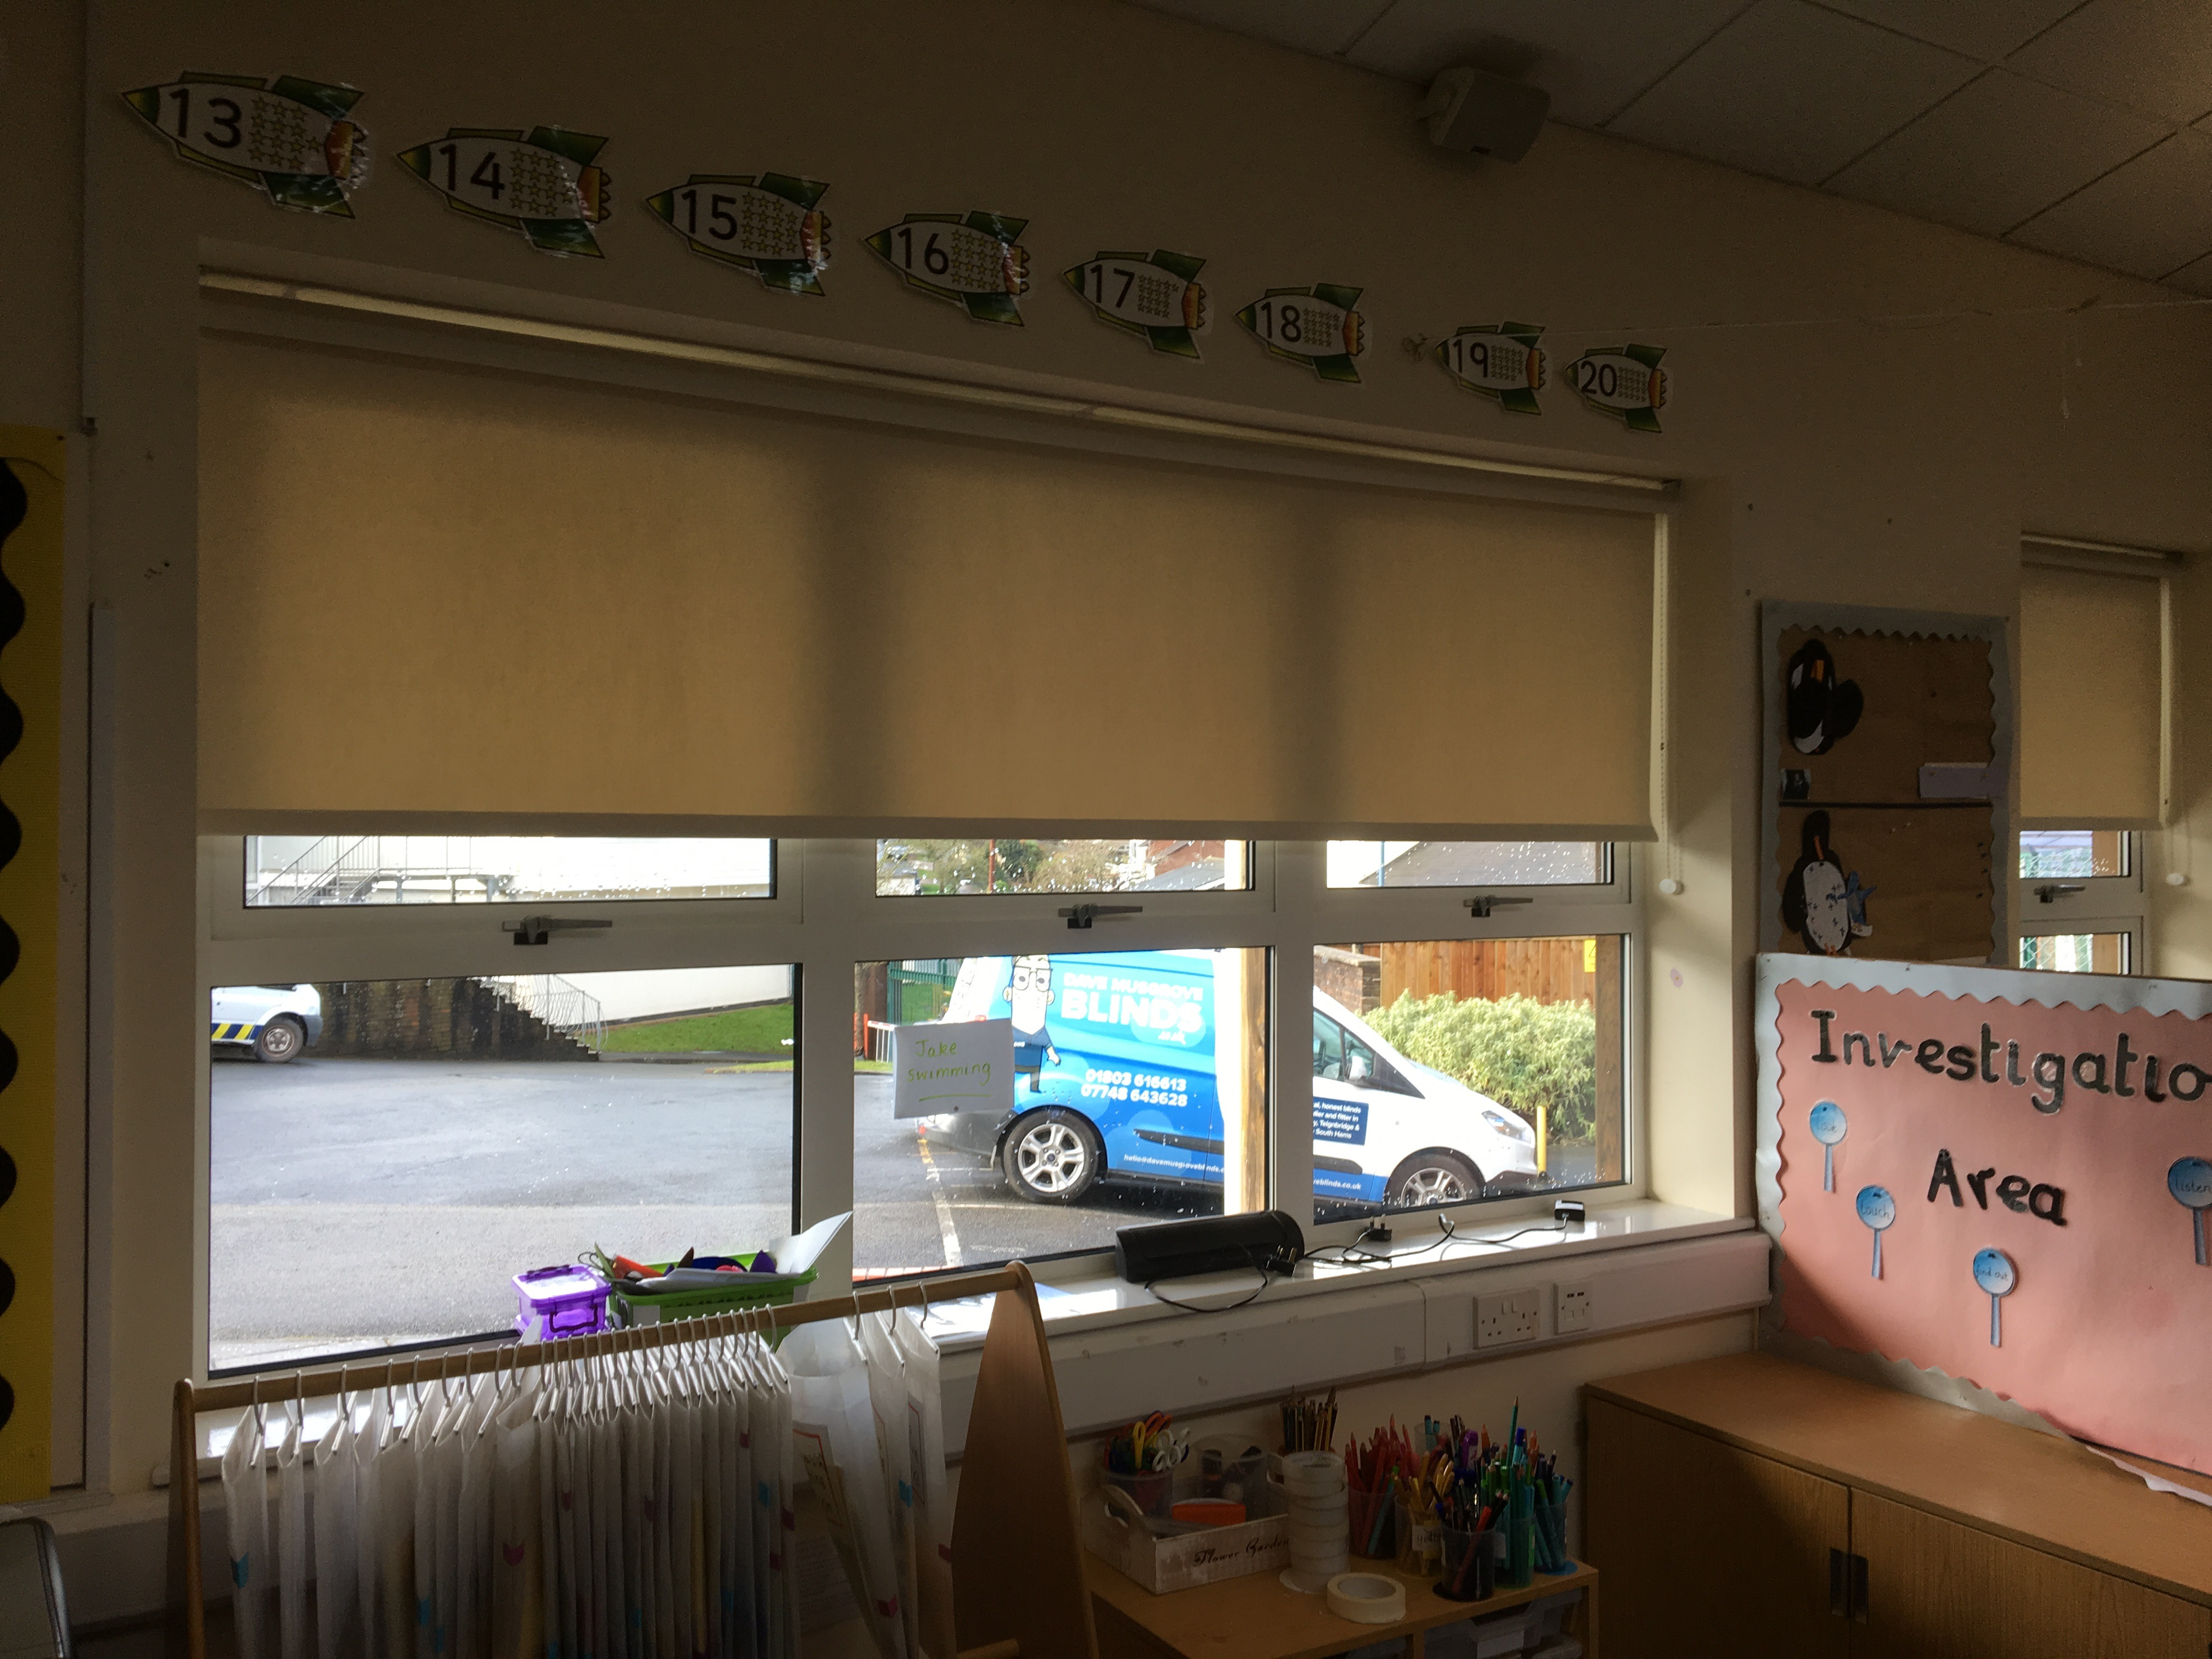 New Shading for School Classrooms Featured Image